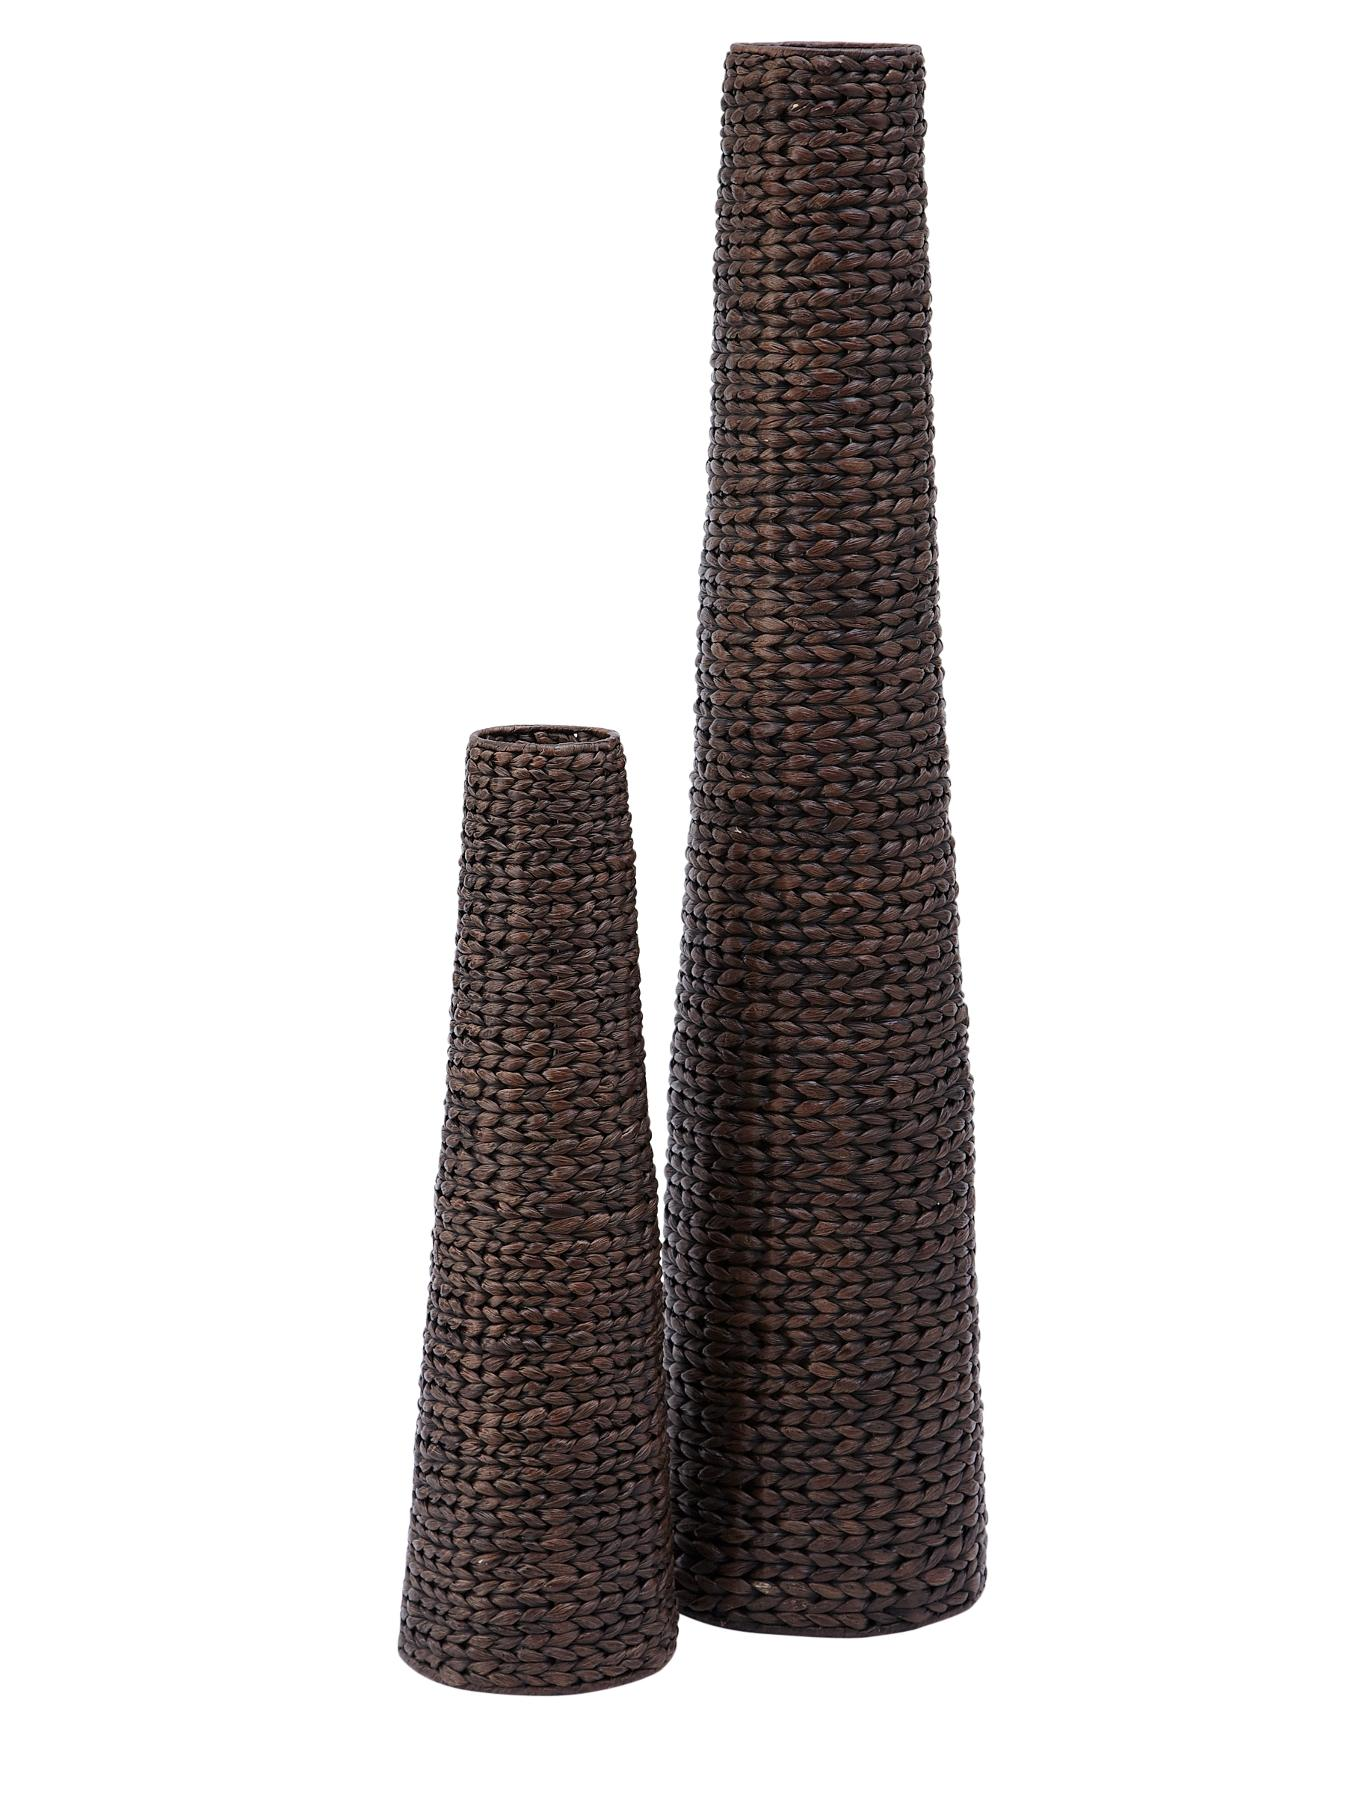 Arrow Weave Large Vases (2Pack)